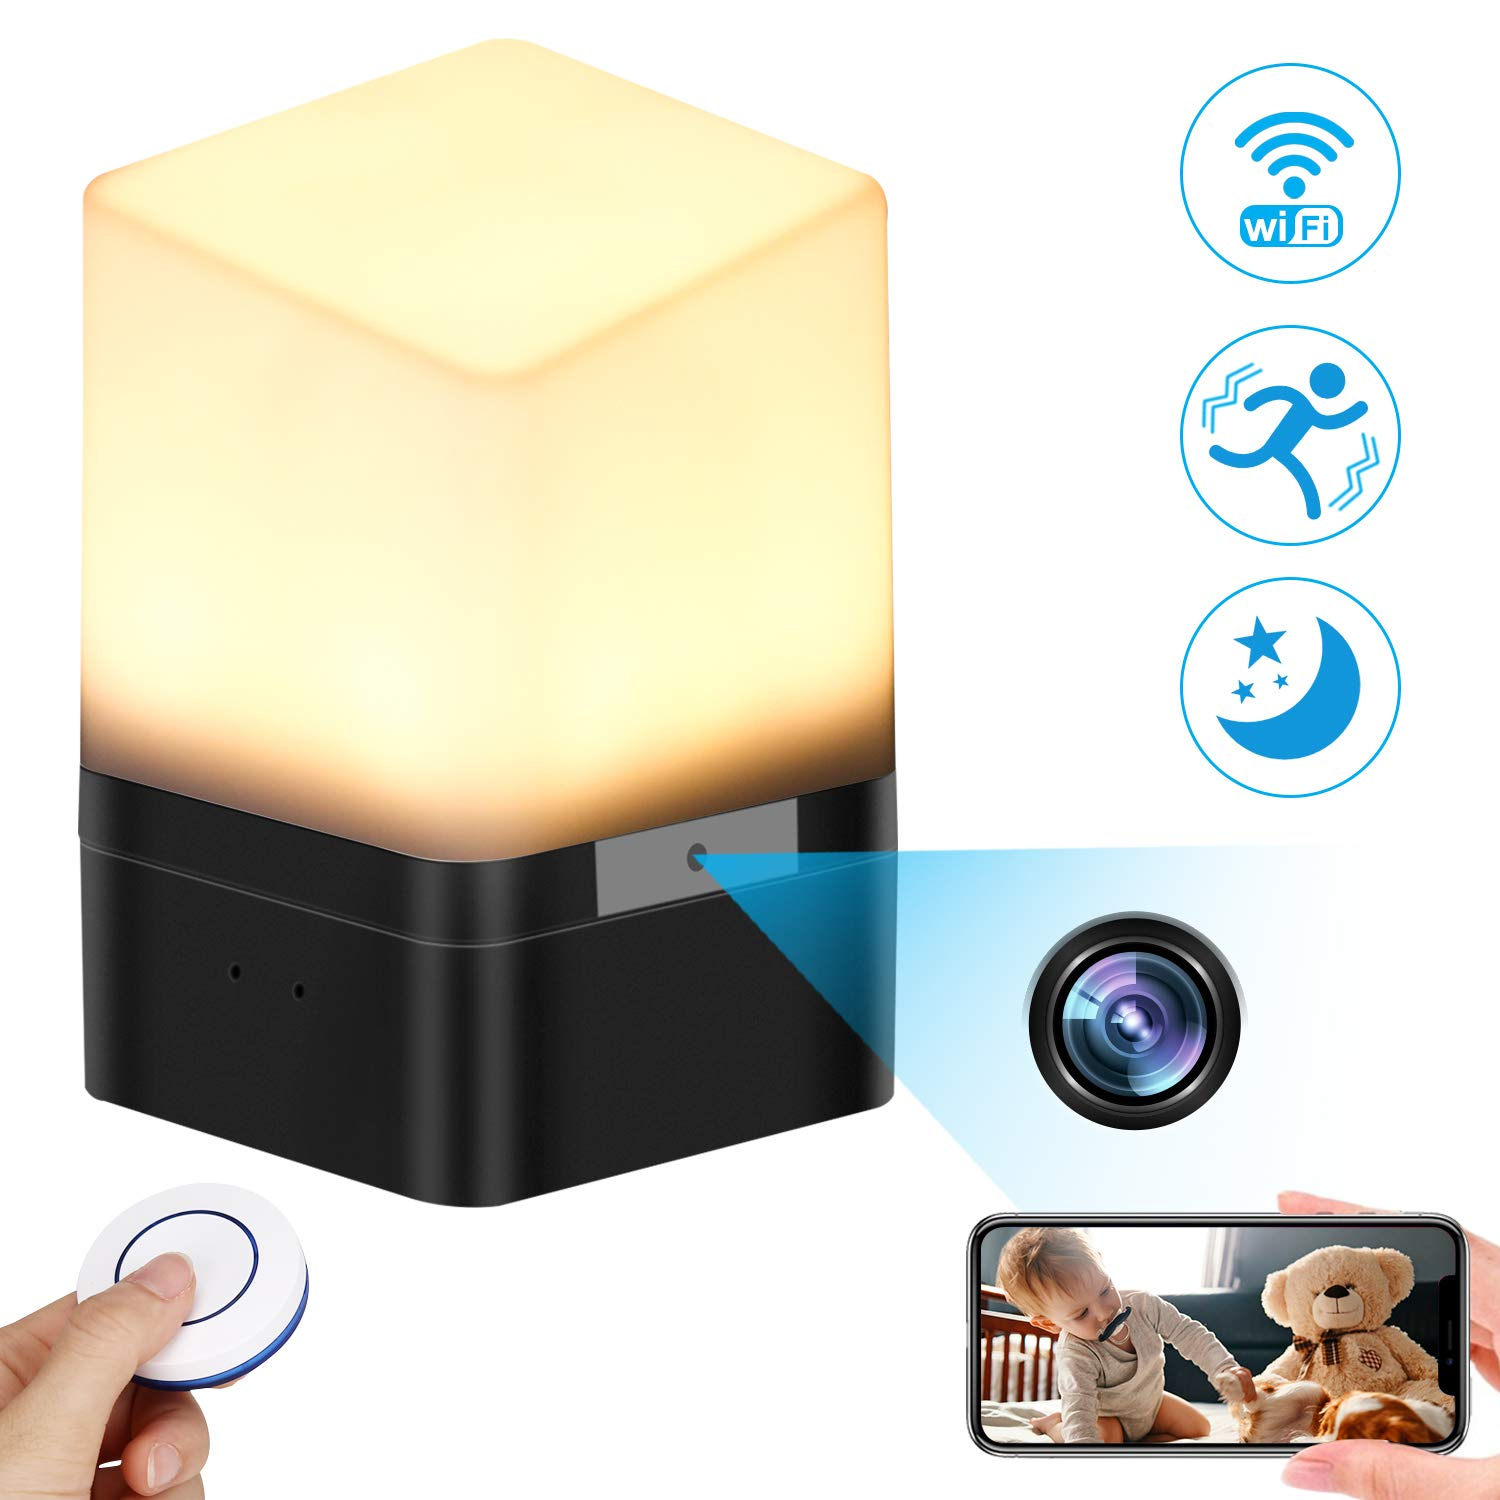 Spy Camera Lamp, KAUPOONK Hidden Camera FHD 1080P WiFi Security Camera Micro Motion Detection Surveillance Cam Indoor USB Chargeable Lamp Video Recorder for Home Employees Car Office Kids Nursery by KAUPOONK